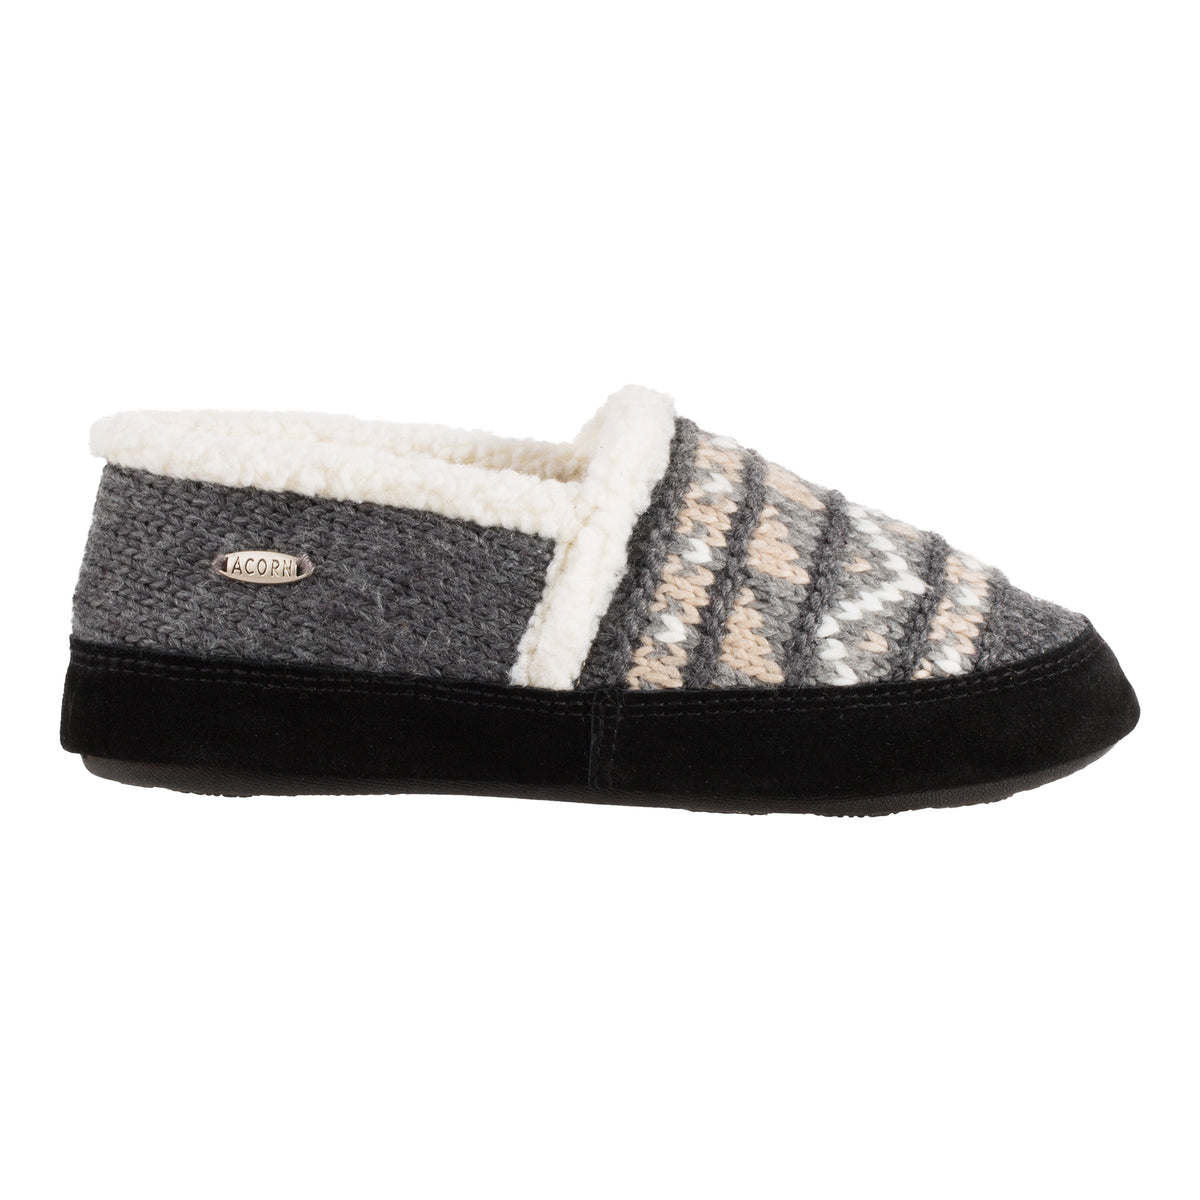 Acorn Nordic Moccasin Slipper Grey Side View